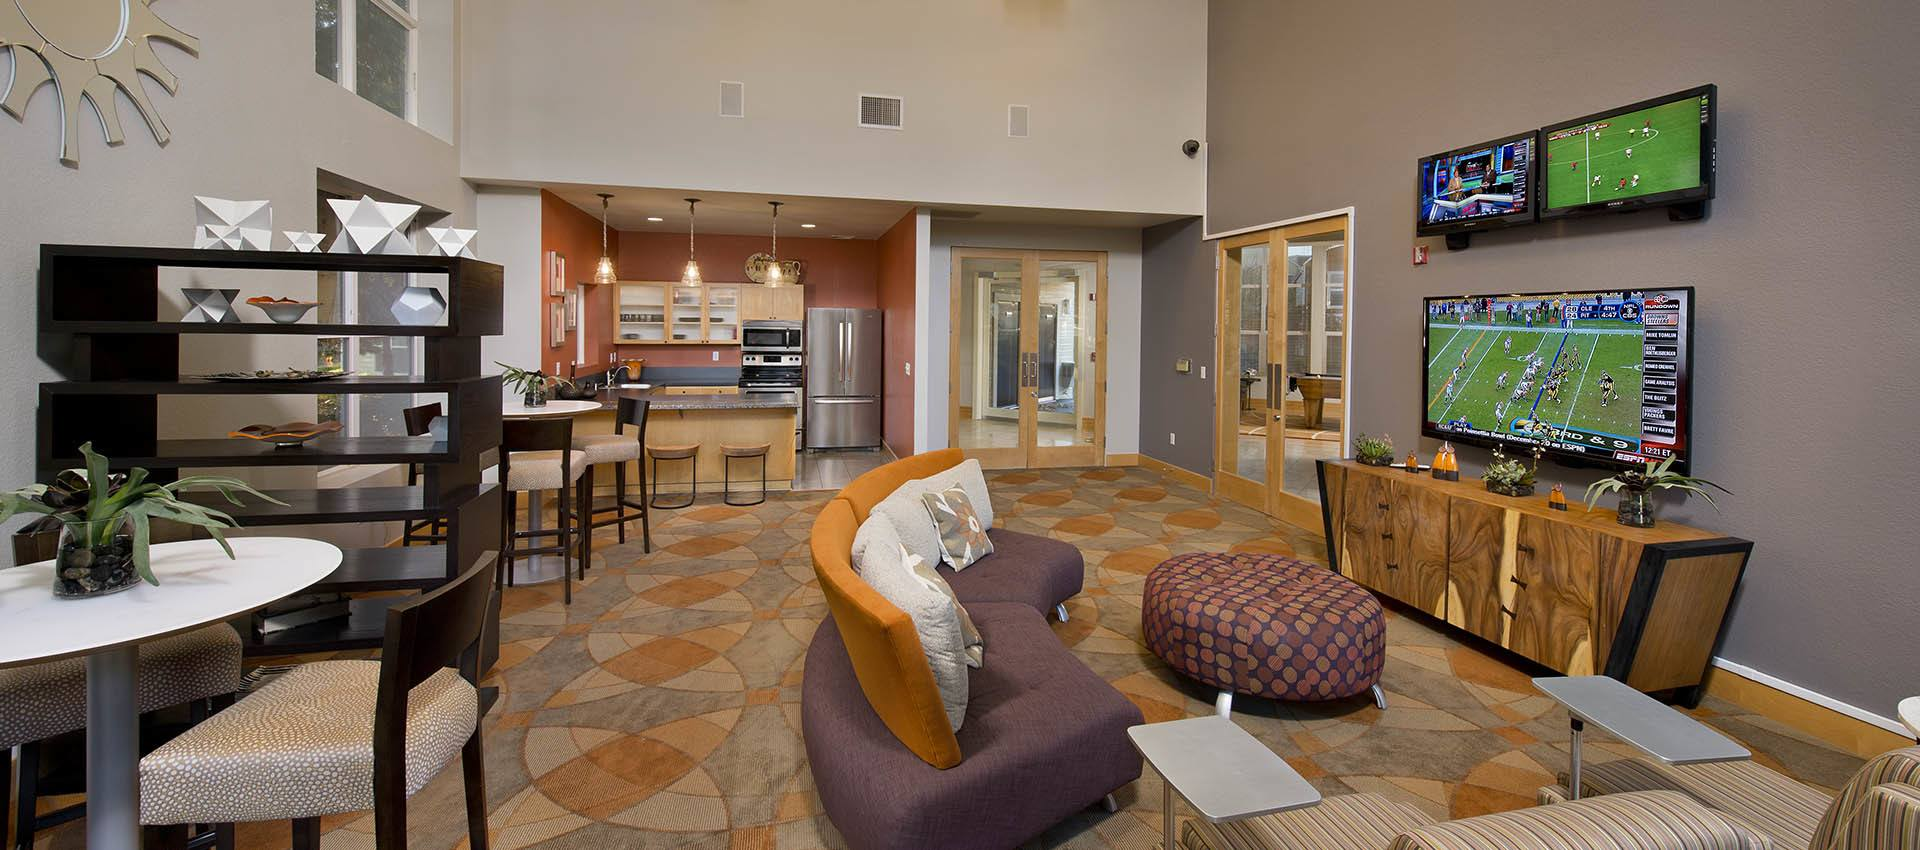 Resident's Clubhouse with Kitchen at Center Pointe Apartment Homes in Beaverton